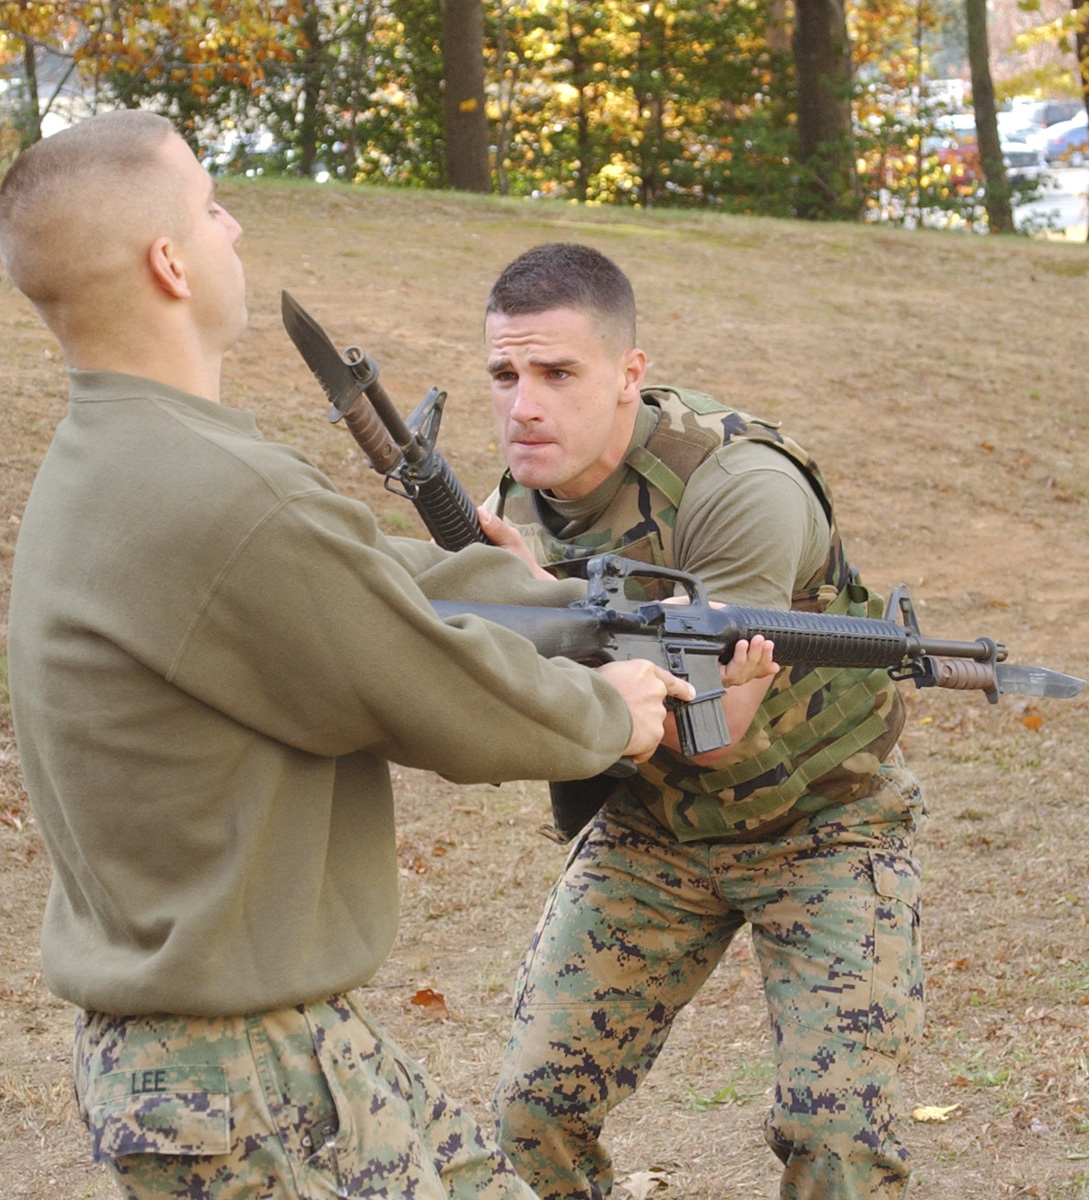 Soldiers practicing hand-to-hand combat using Rifle-bayonets